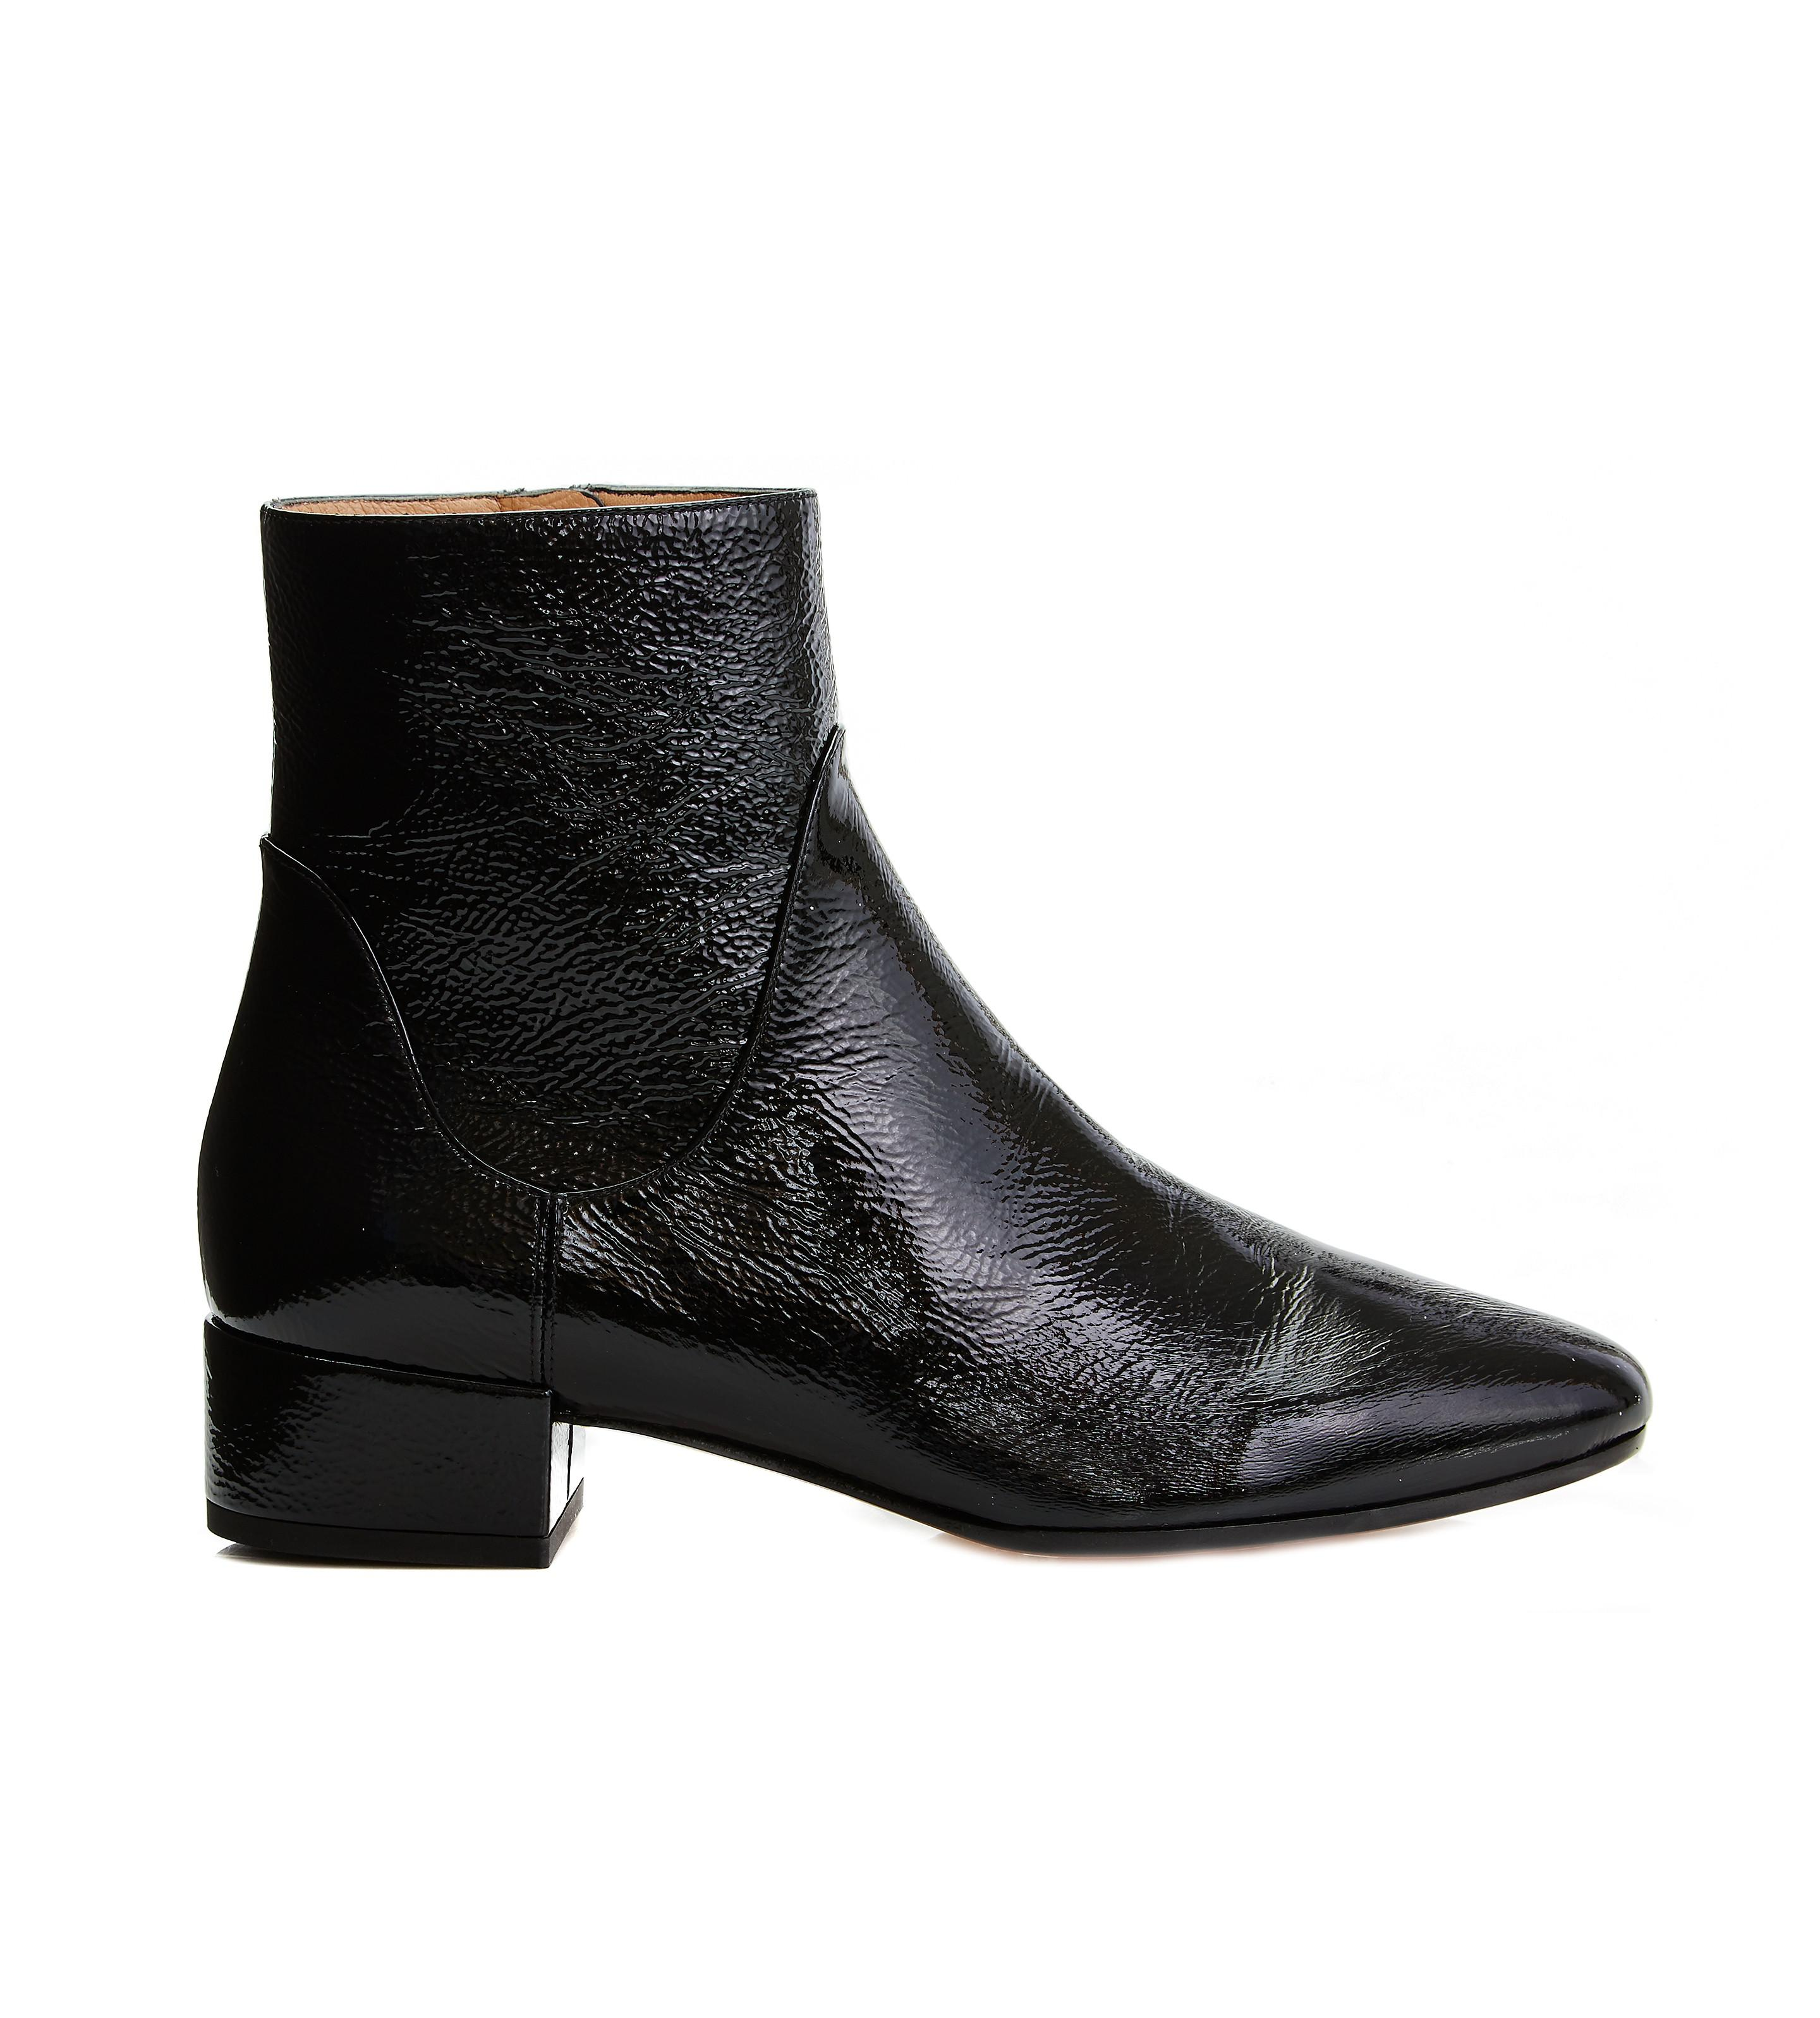 Francesco Russo Patent leather ankle boots pre order online countdown package online cheap online shop buy cheap new styles free shipping 2014 new FGI4SmyJcF